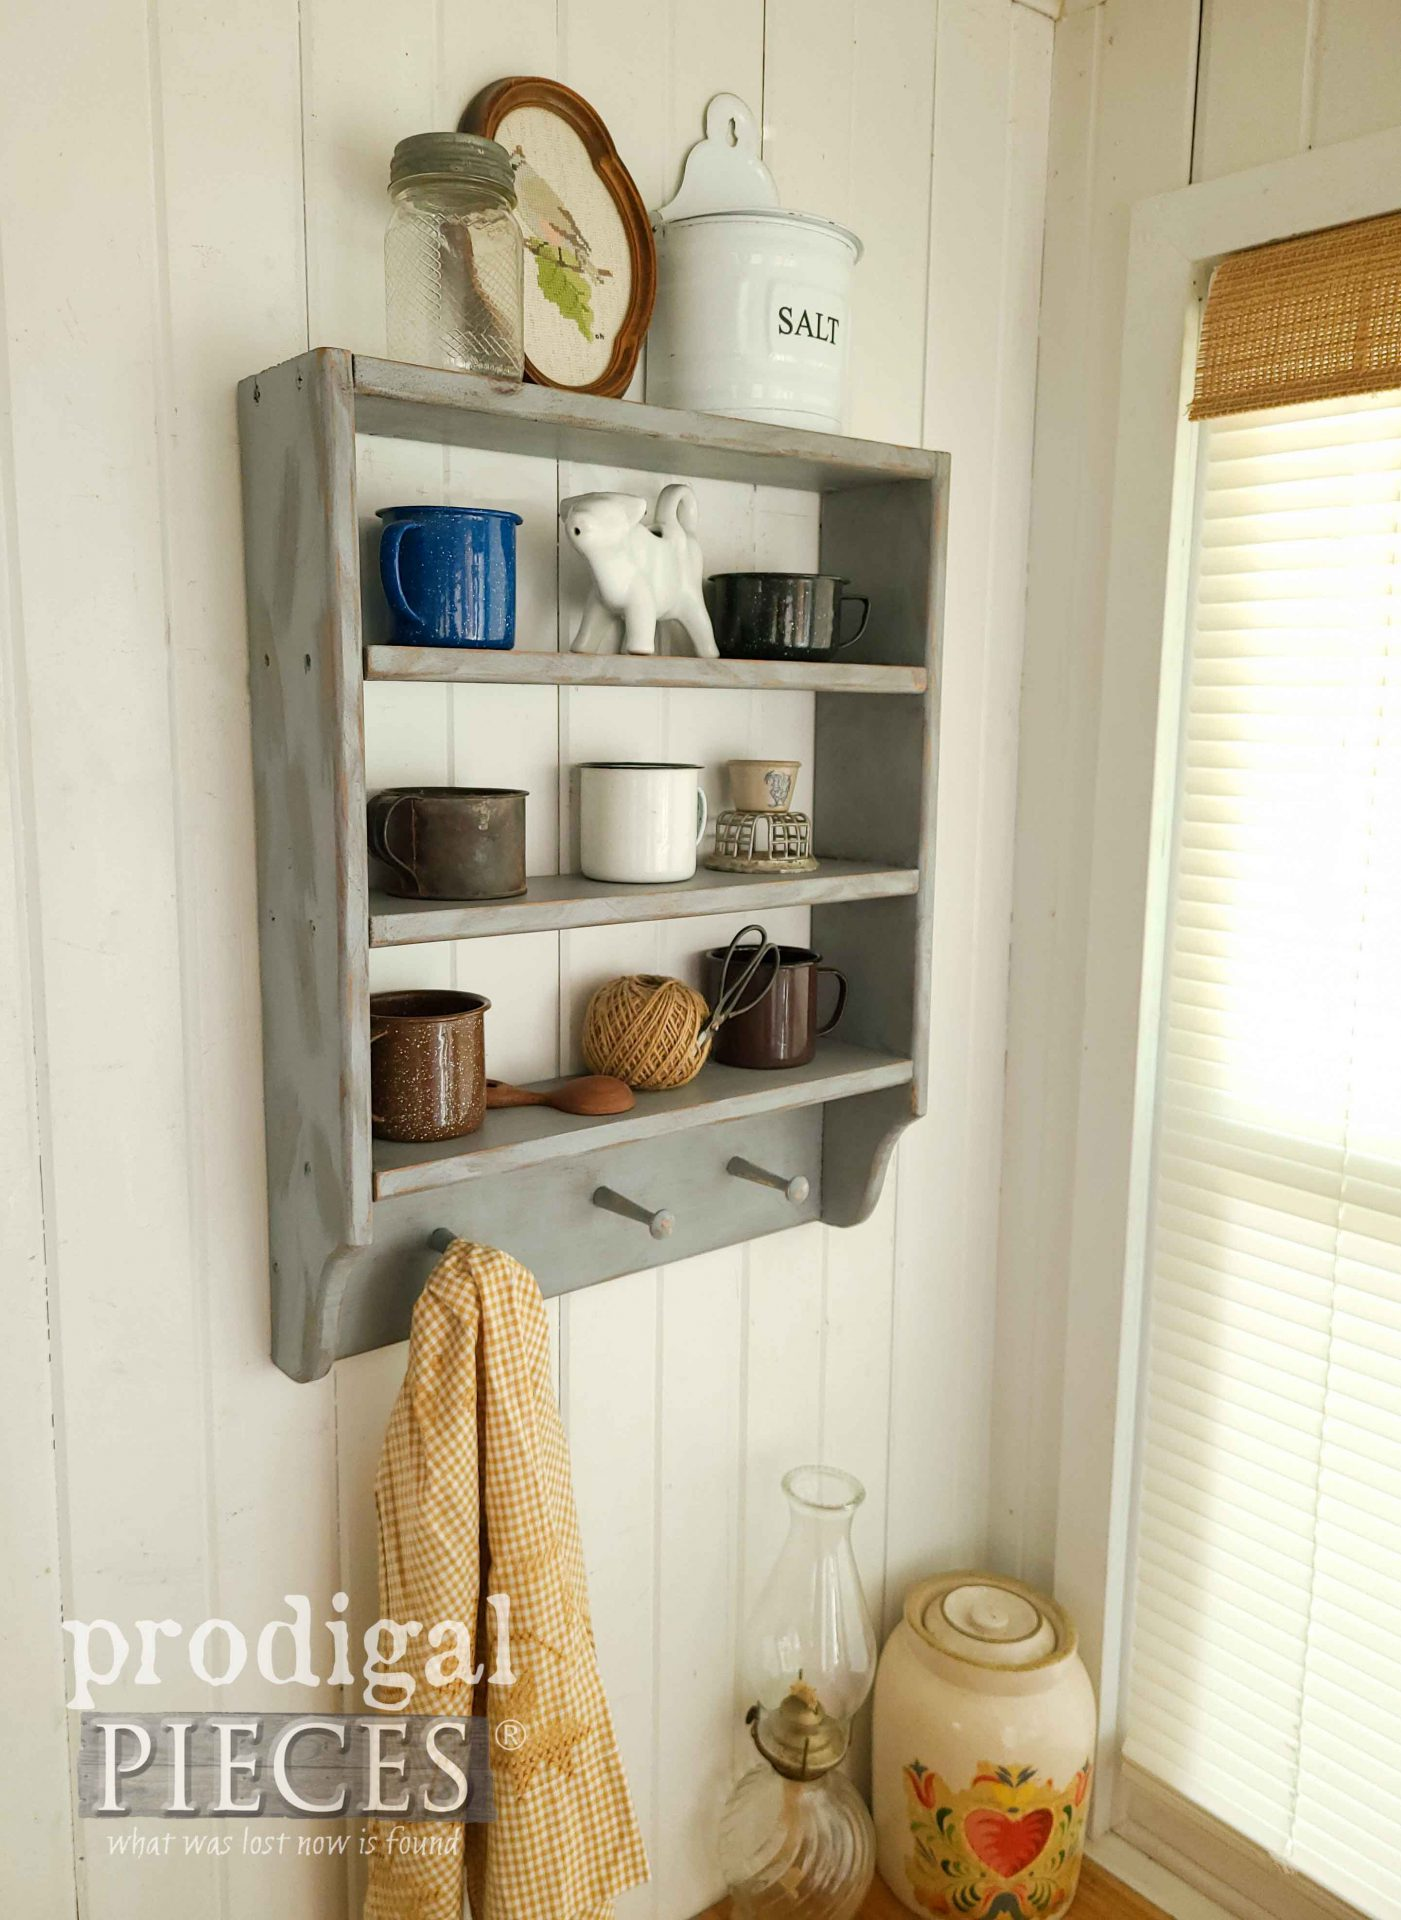 Rustic Blue Farmhouse Shelf with Tin Cup Collection for Mini Thrift Store Makeovers by Prodigal Pieces | prodigalpieces.com #prodigalpieces #farmhouse #home #homedecor #diy